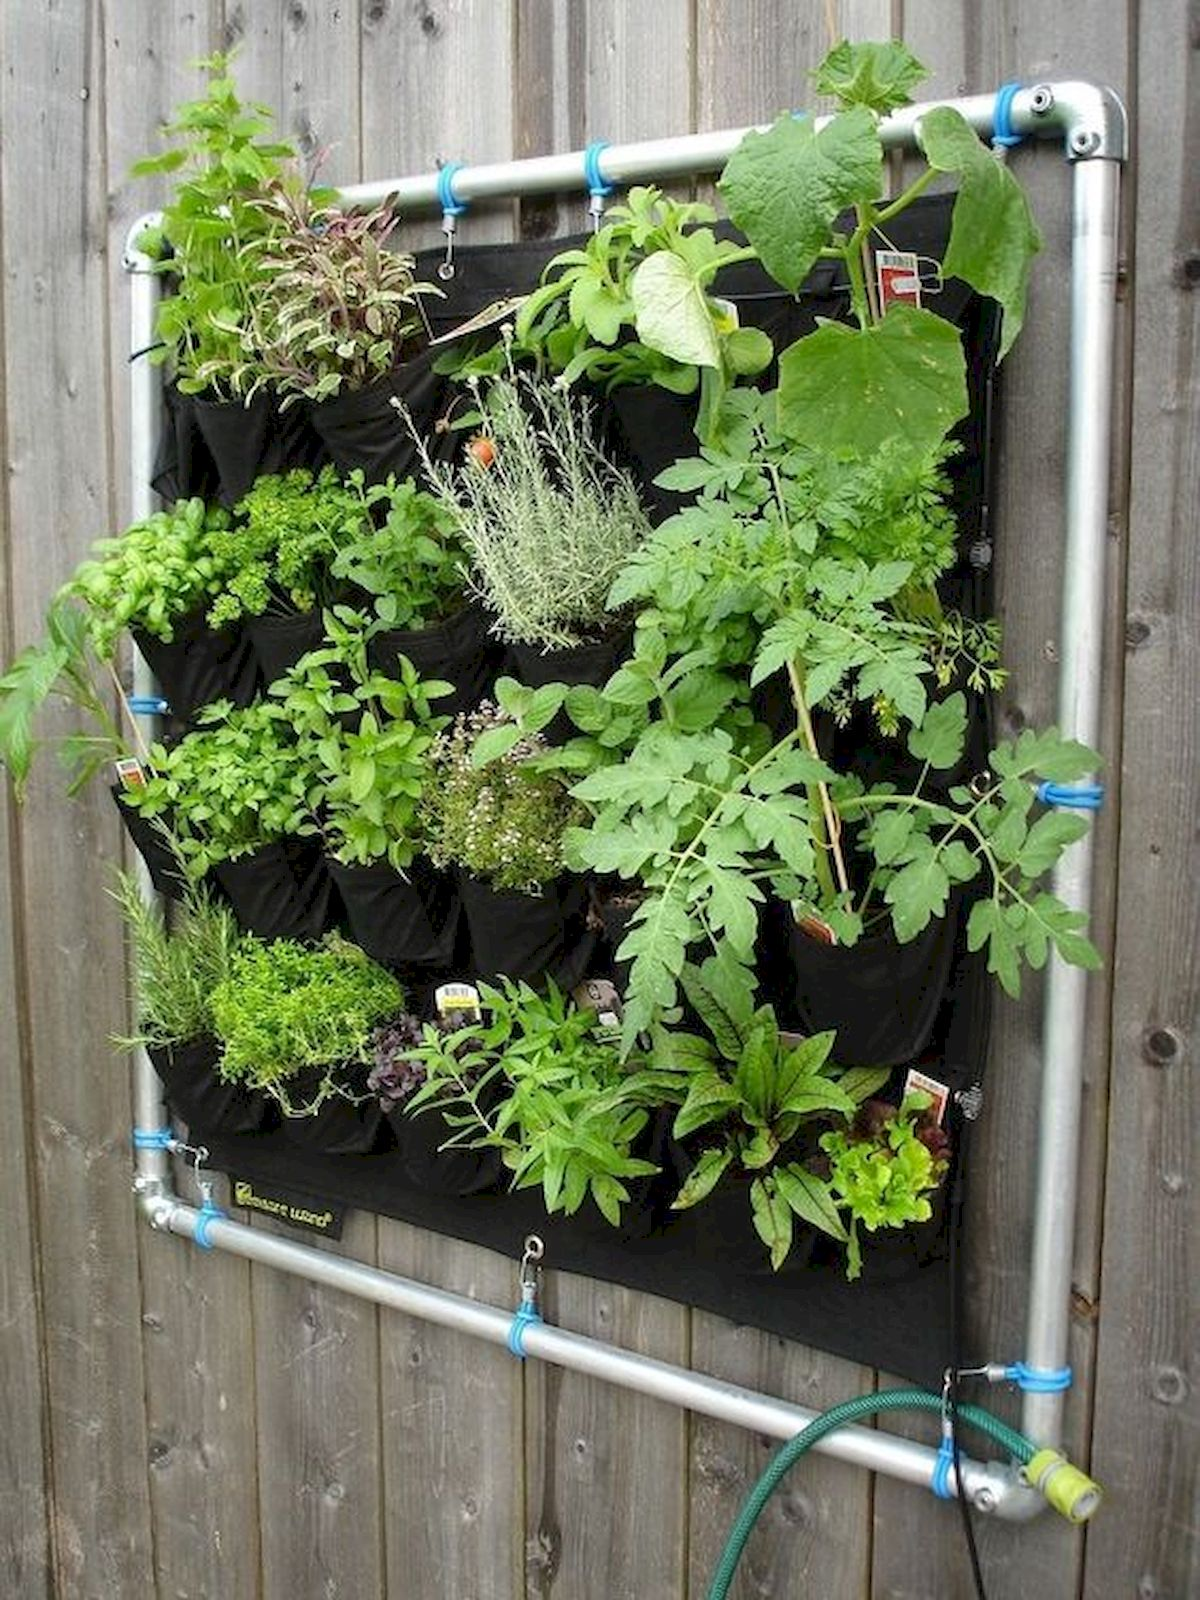 44 Fantastic Vertical Garden Ideas To Make Your Home Beautiful (36)